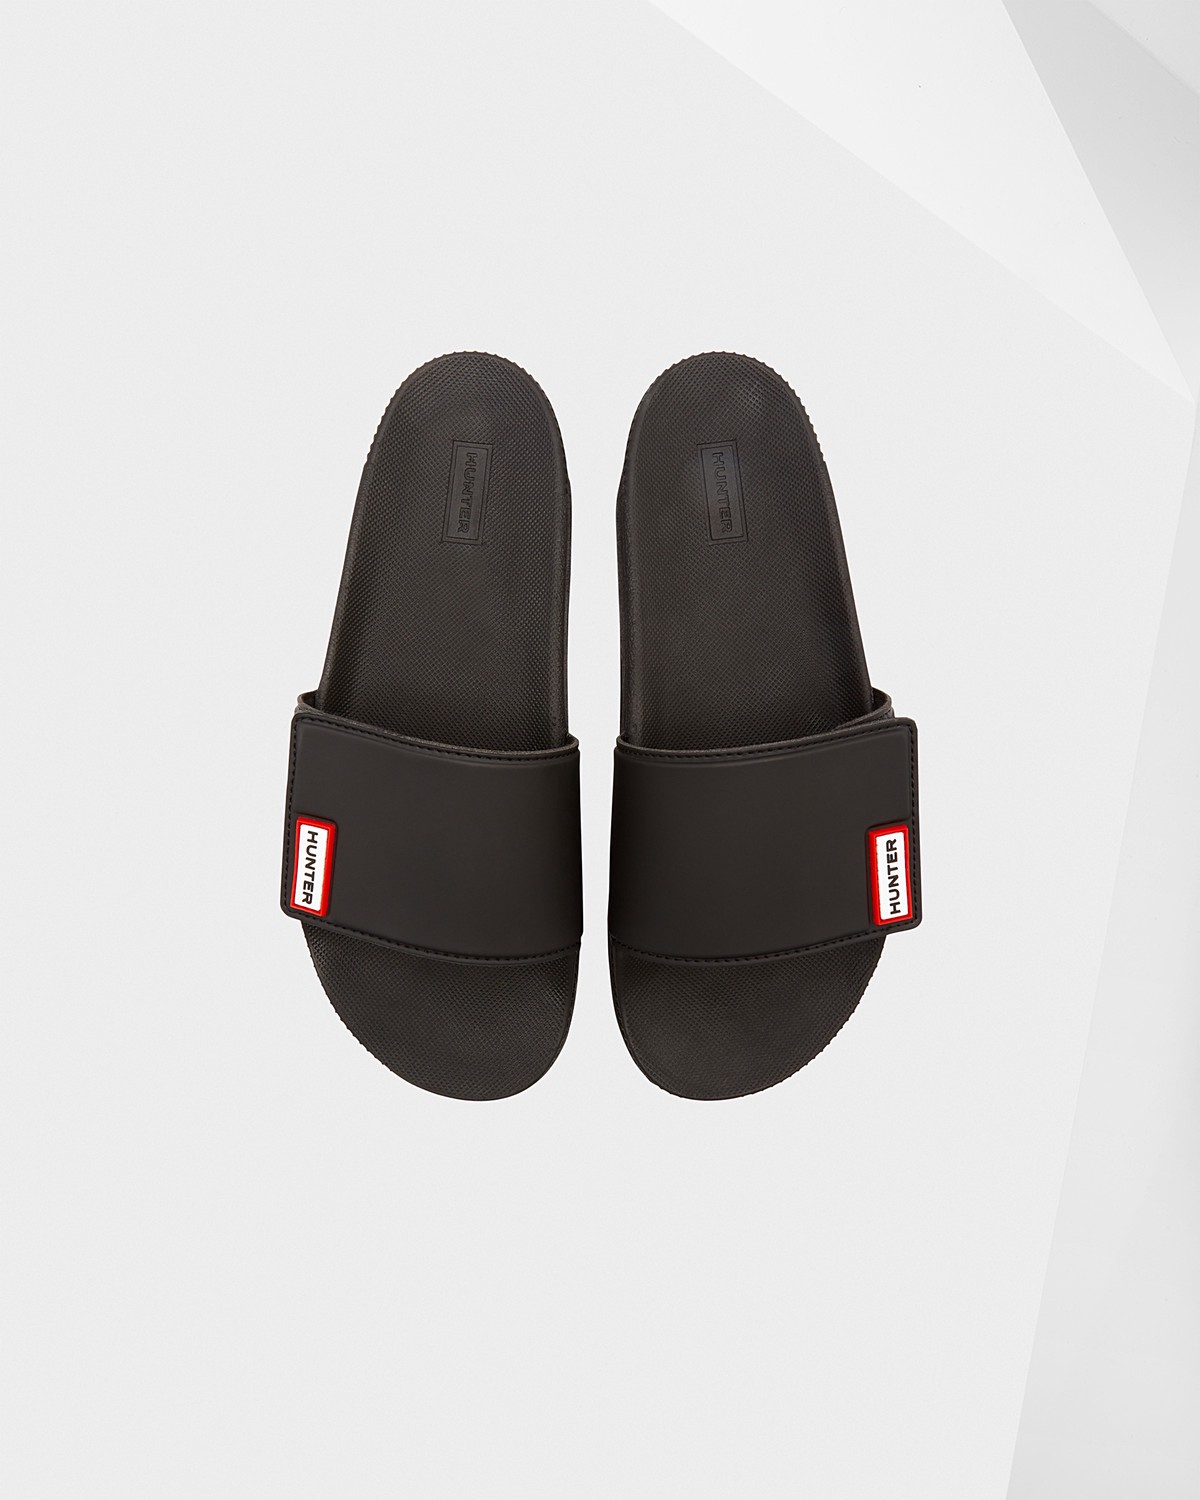 e63813c04 Hunter Women's Original Adjustable Slides: Black - Us 5 | Products ...